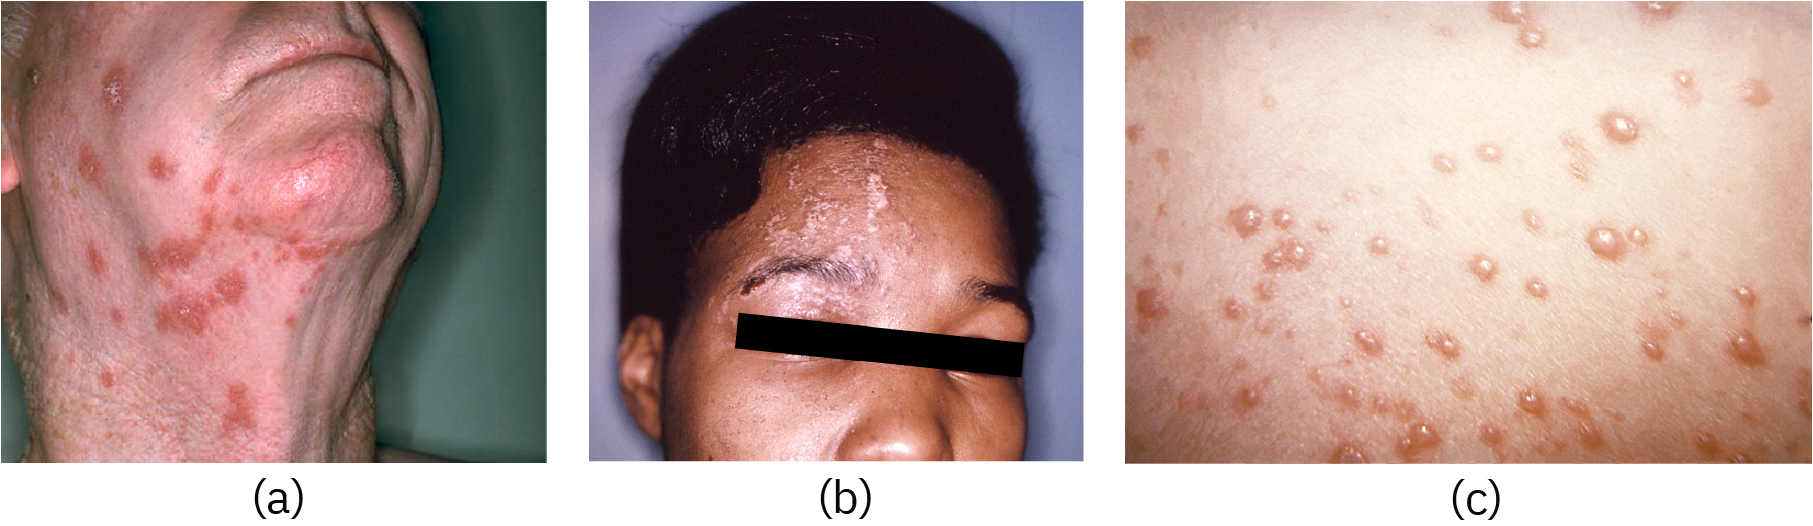 a) Large red spots on an adult's neck. b) Bumps on an adult's face. c) Red bumps on skin.